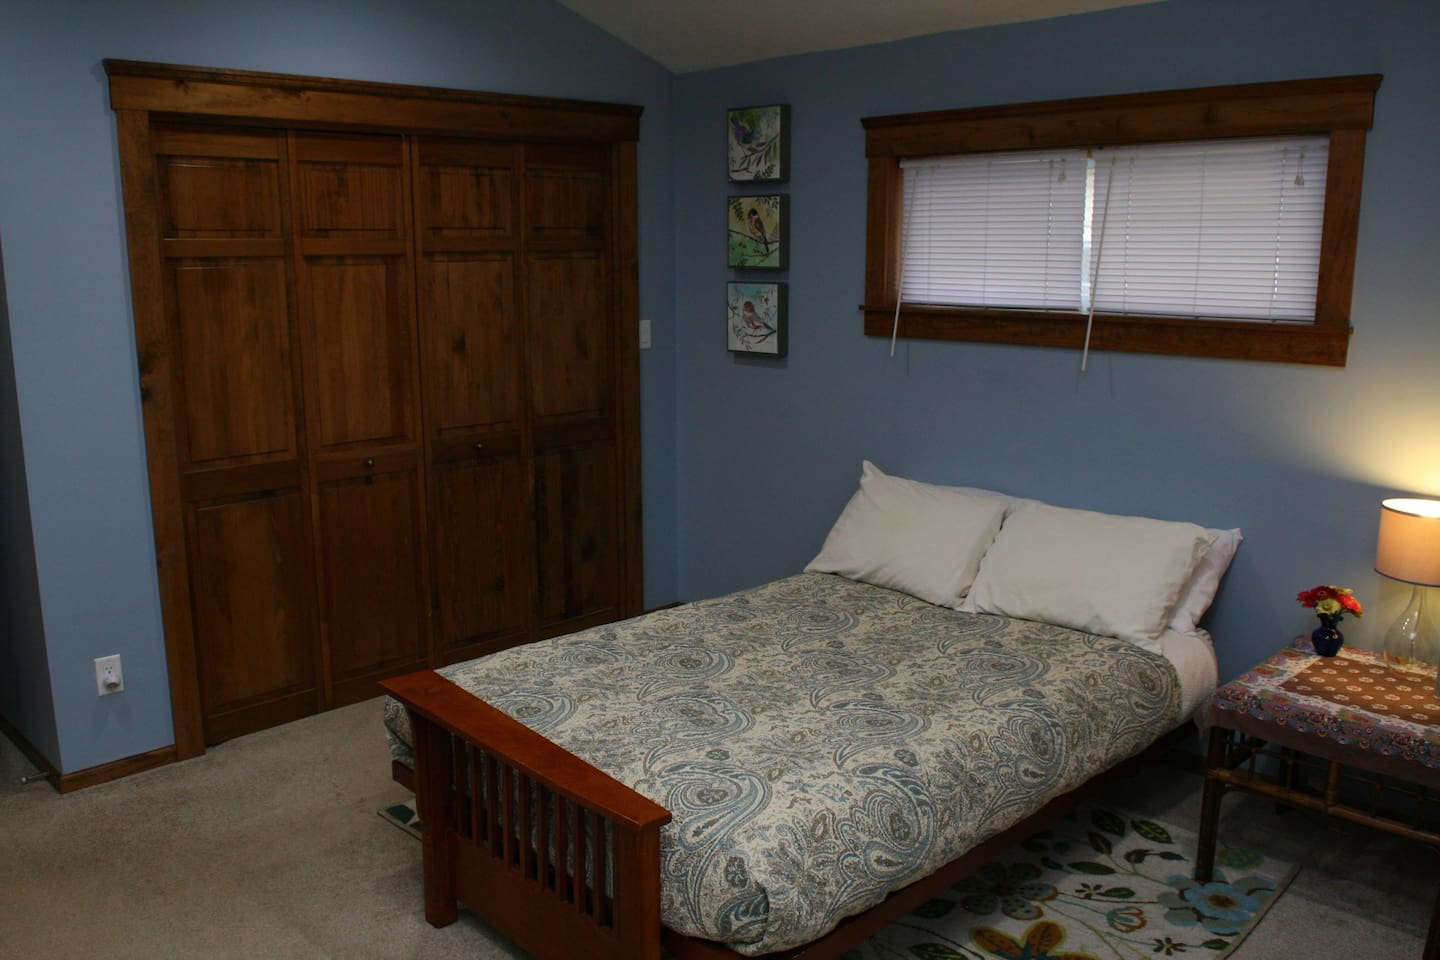 Your very spacious bedroom has a comfy futon mattress with a side table and lamp. The closet has hangers, an iron and ironing board, and a hanging organizer.